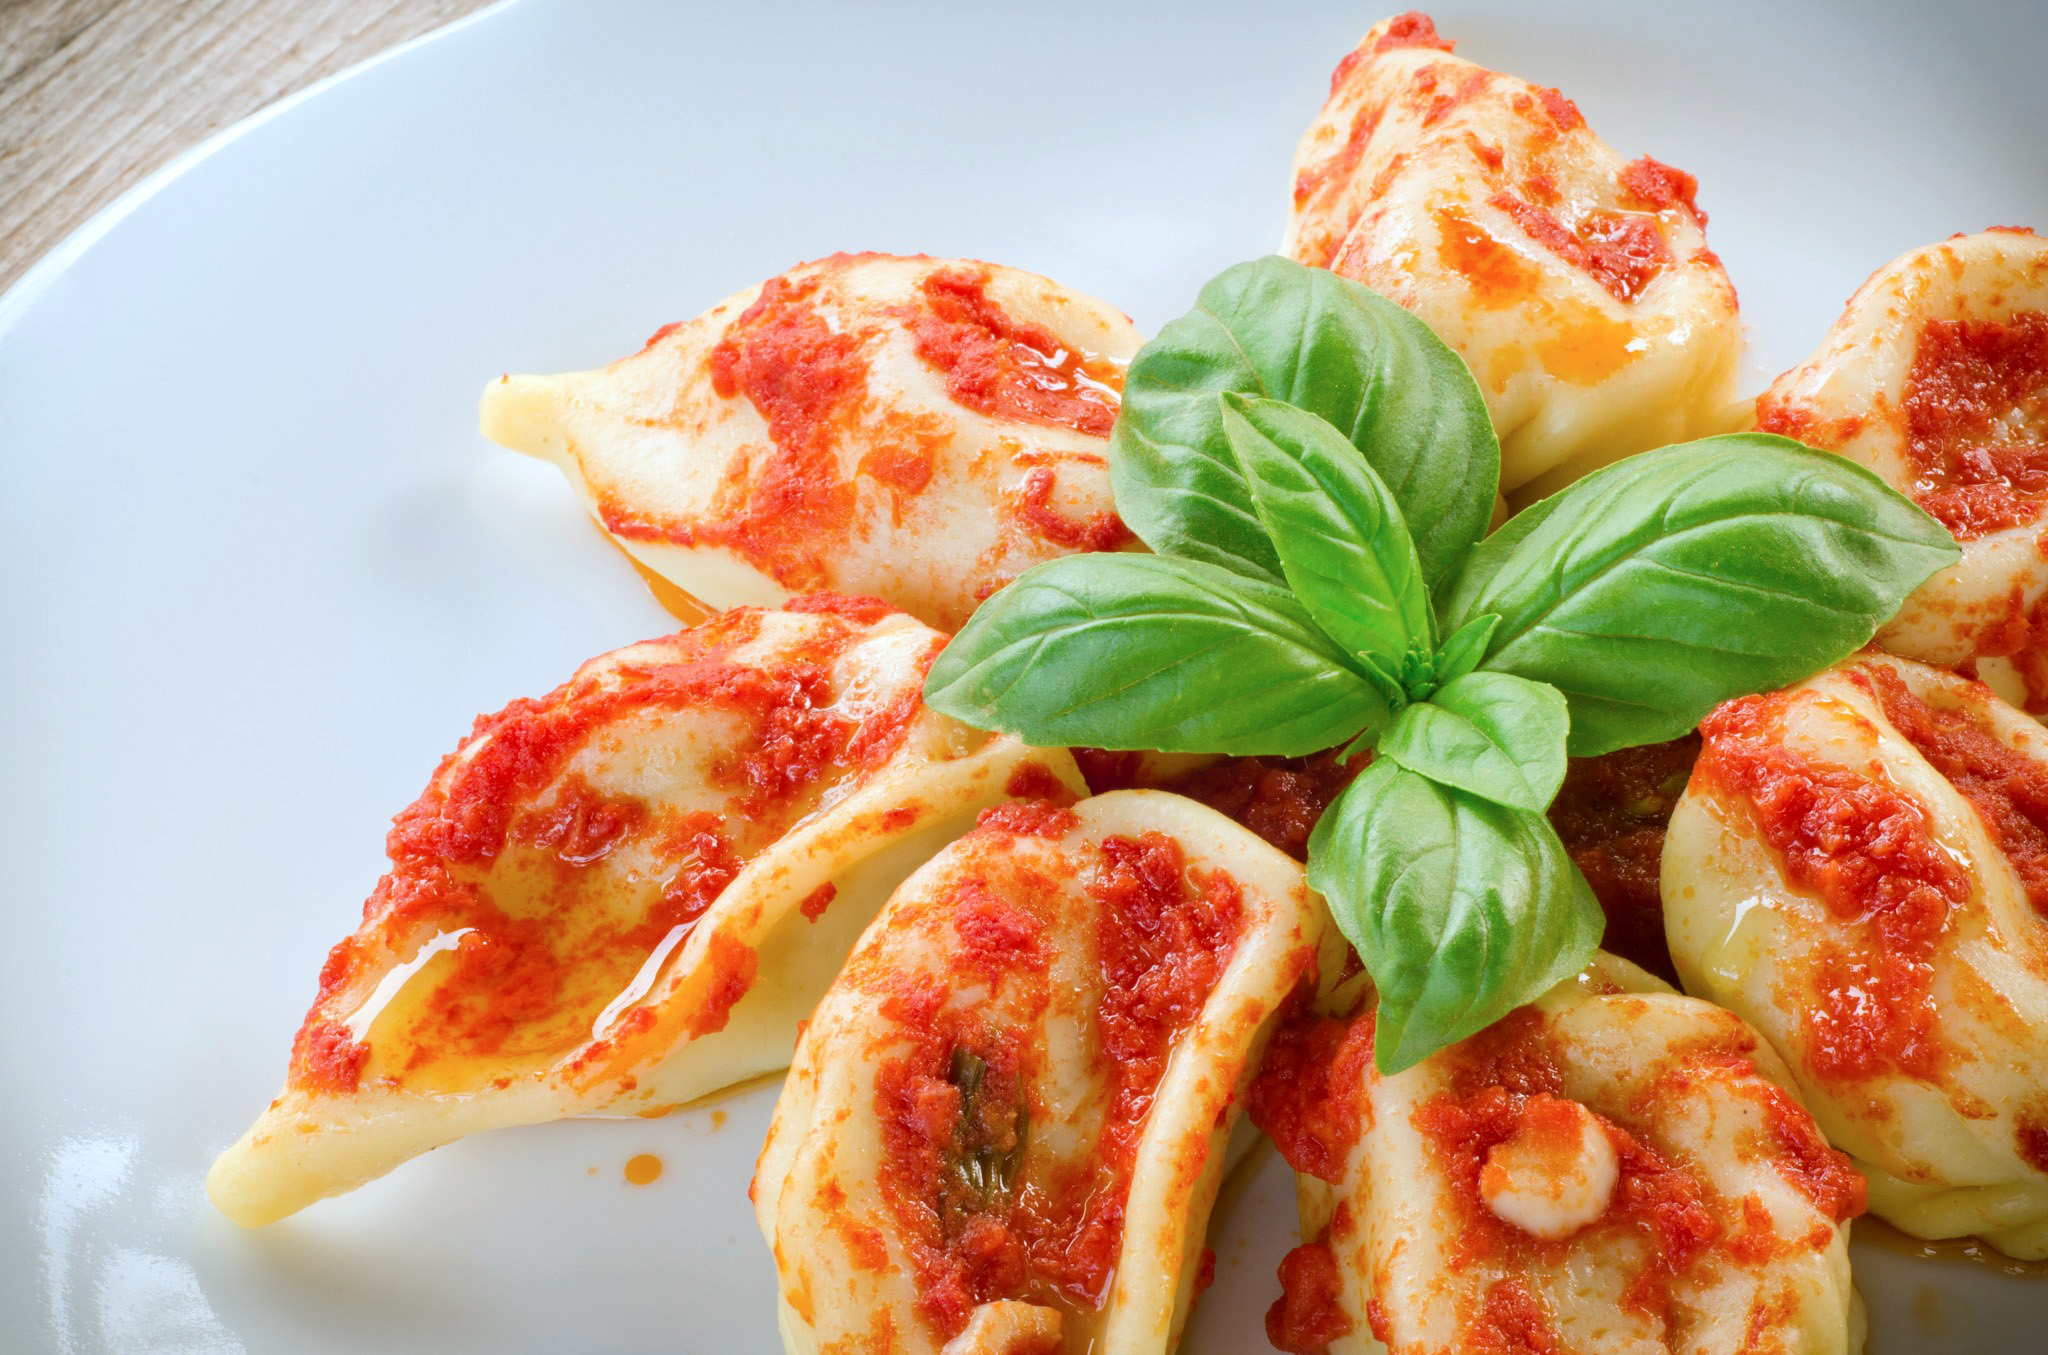 A plate of culurgiones flecked with tomato based sauce, grated pecorino and garnished with a sprig of basil,